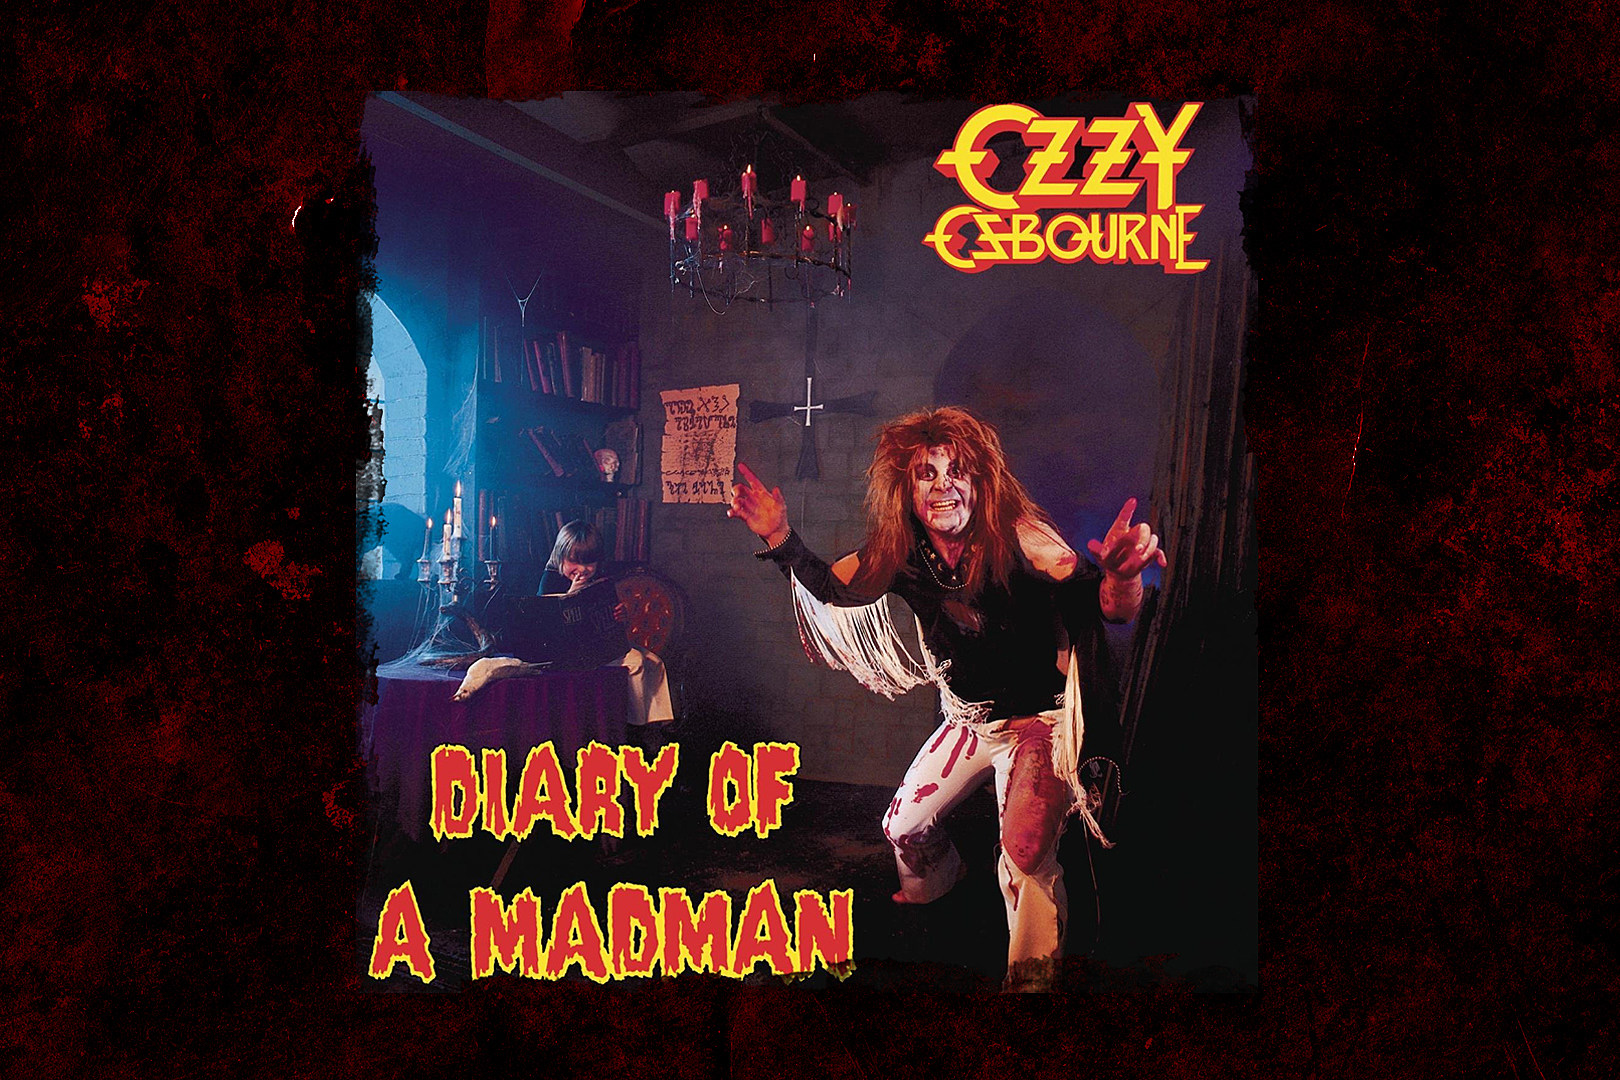 38 Years Ago: Ozzy Osbourne Flies High Again With 'Diary of a Madman'